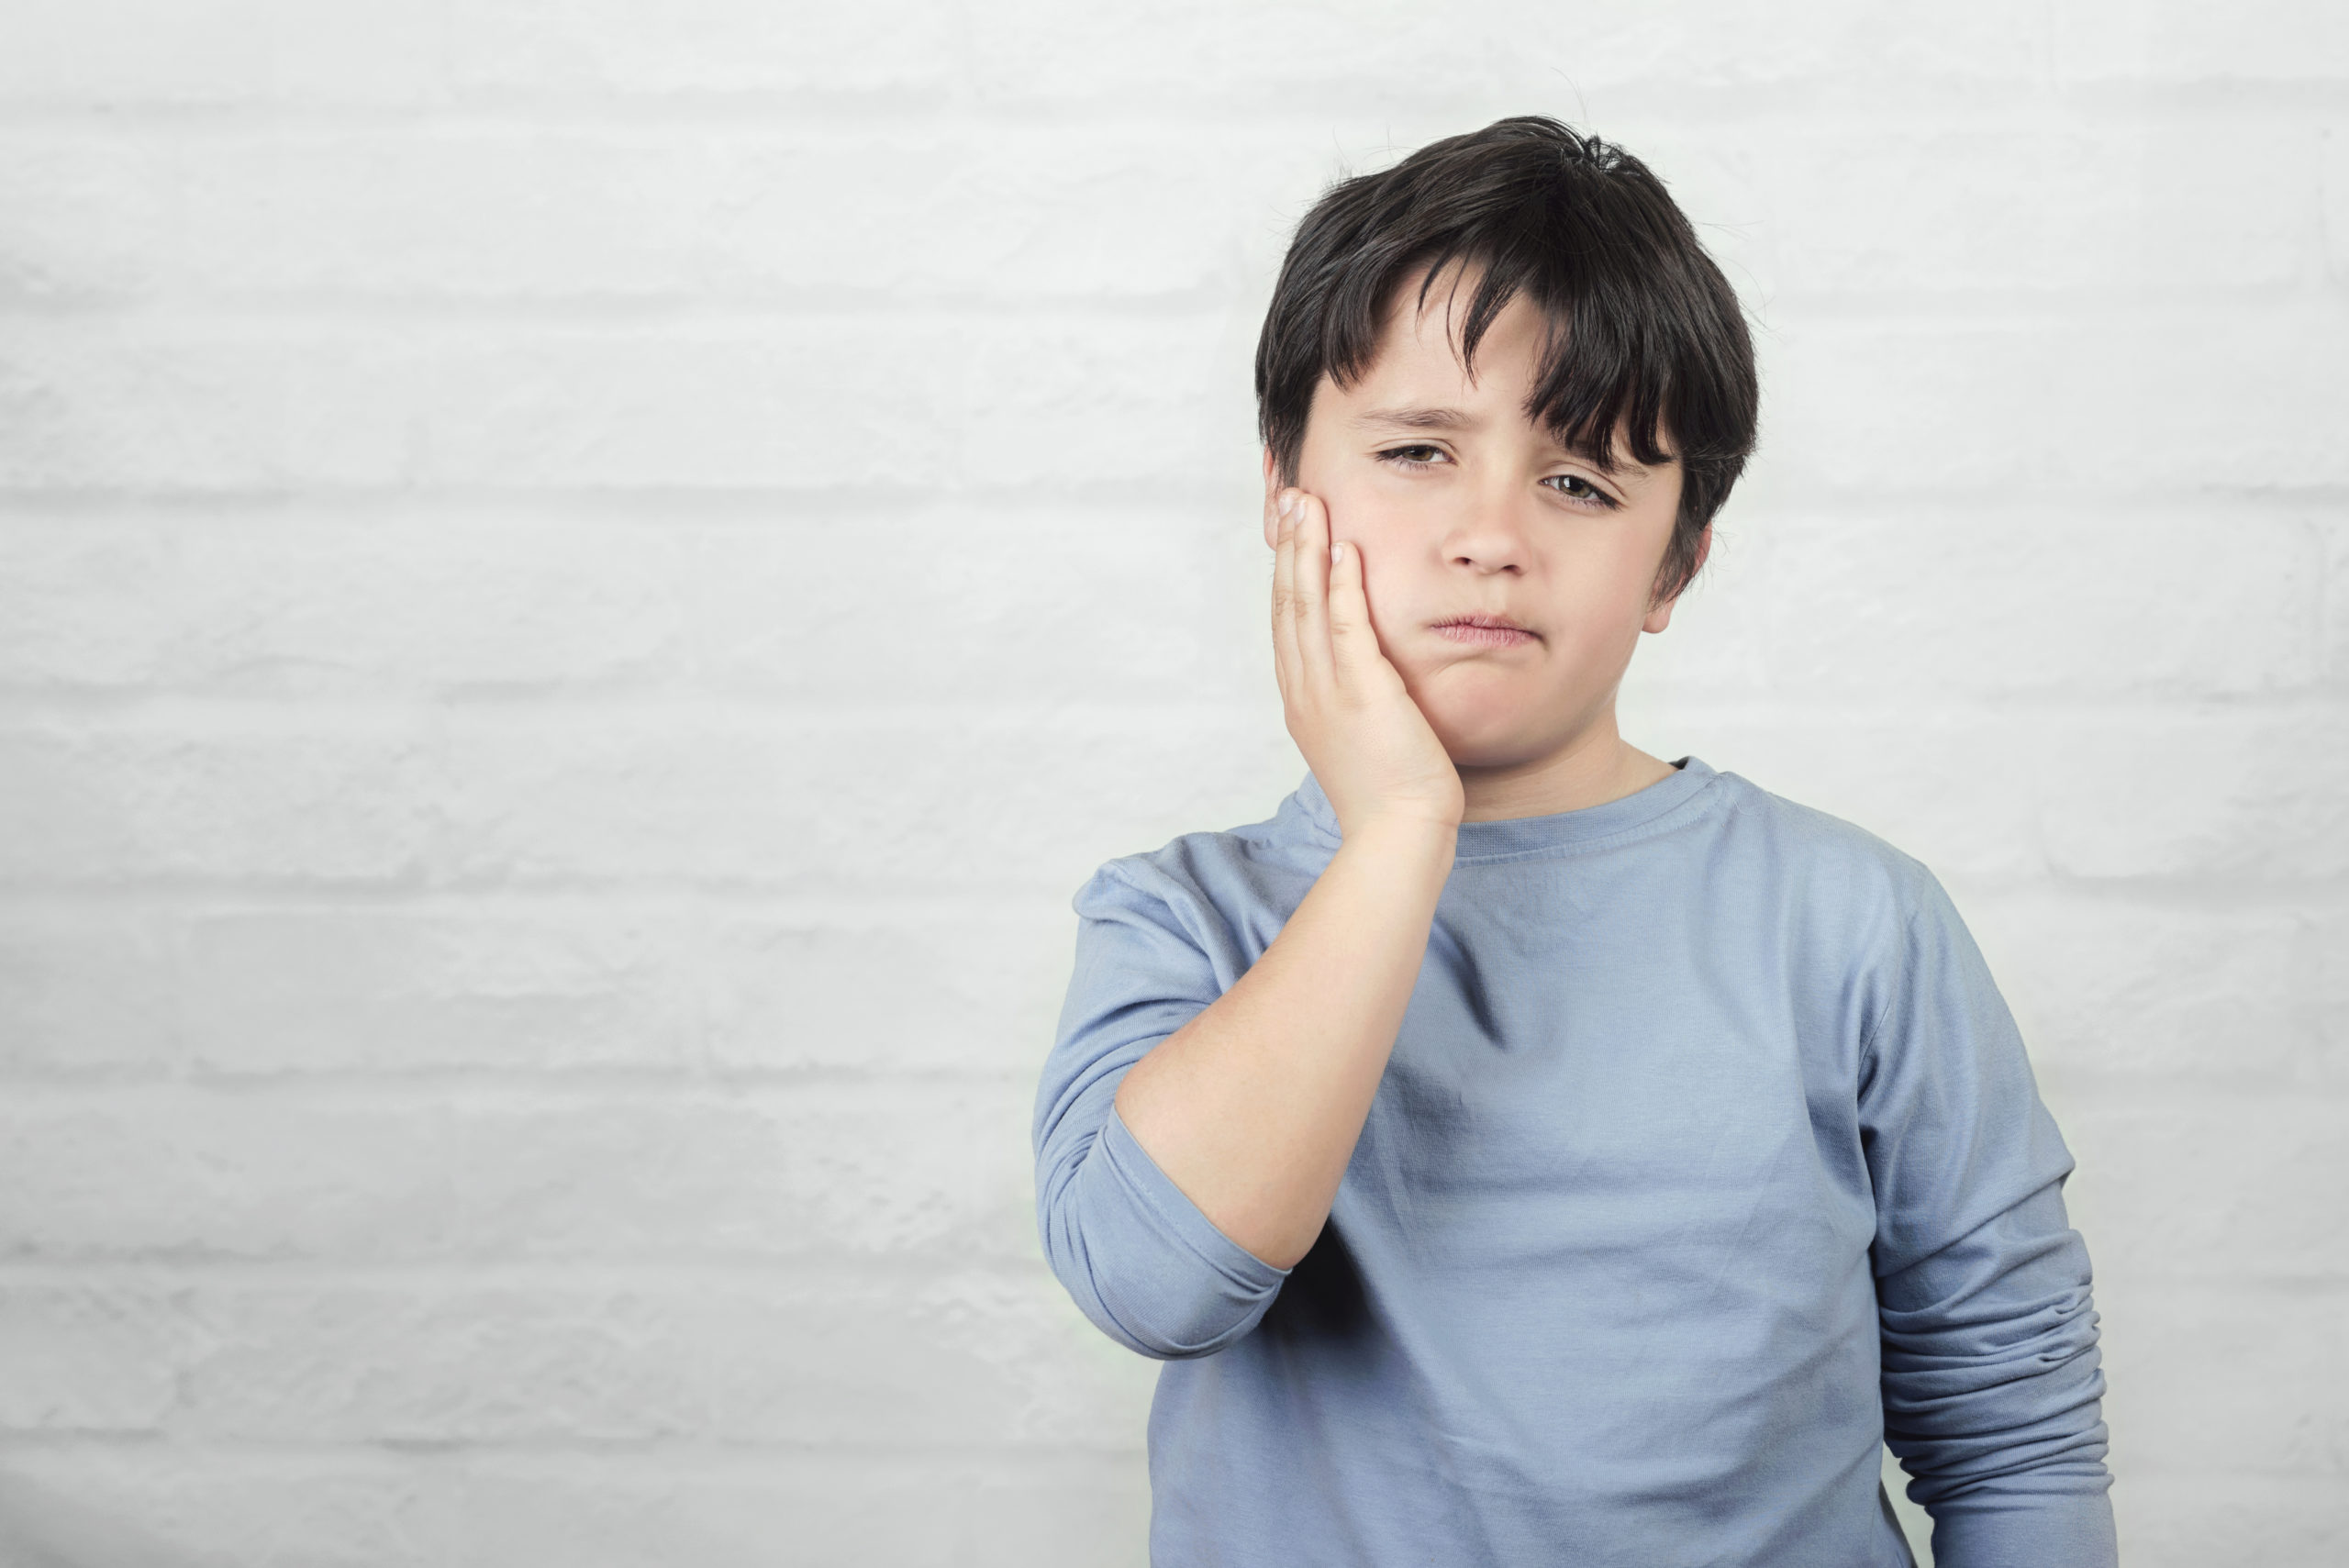 Causes of Toothaches for kids and ways to relieve it